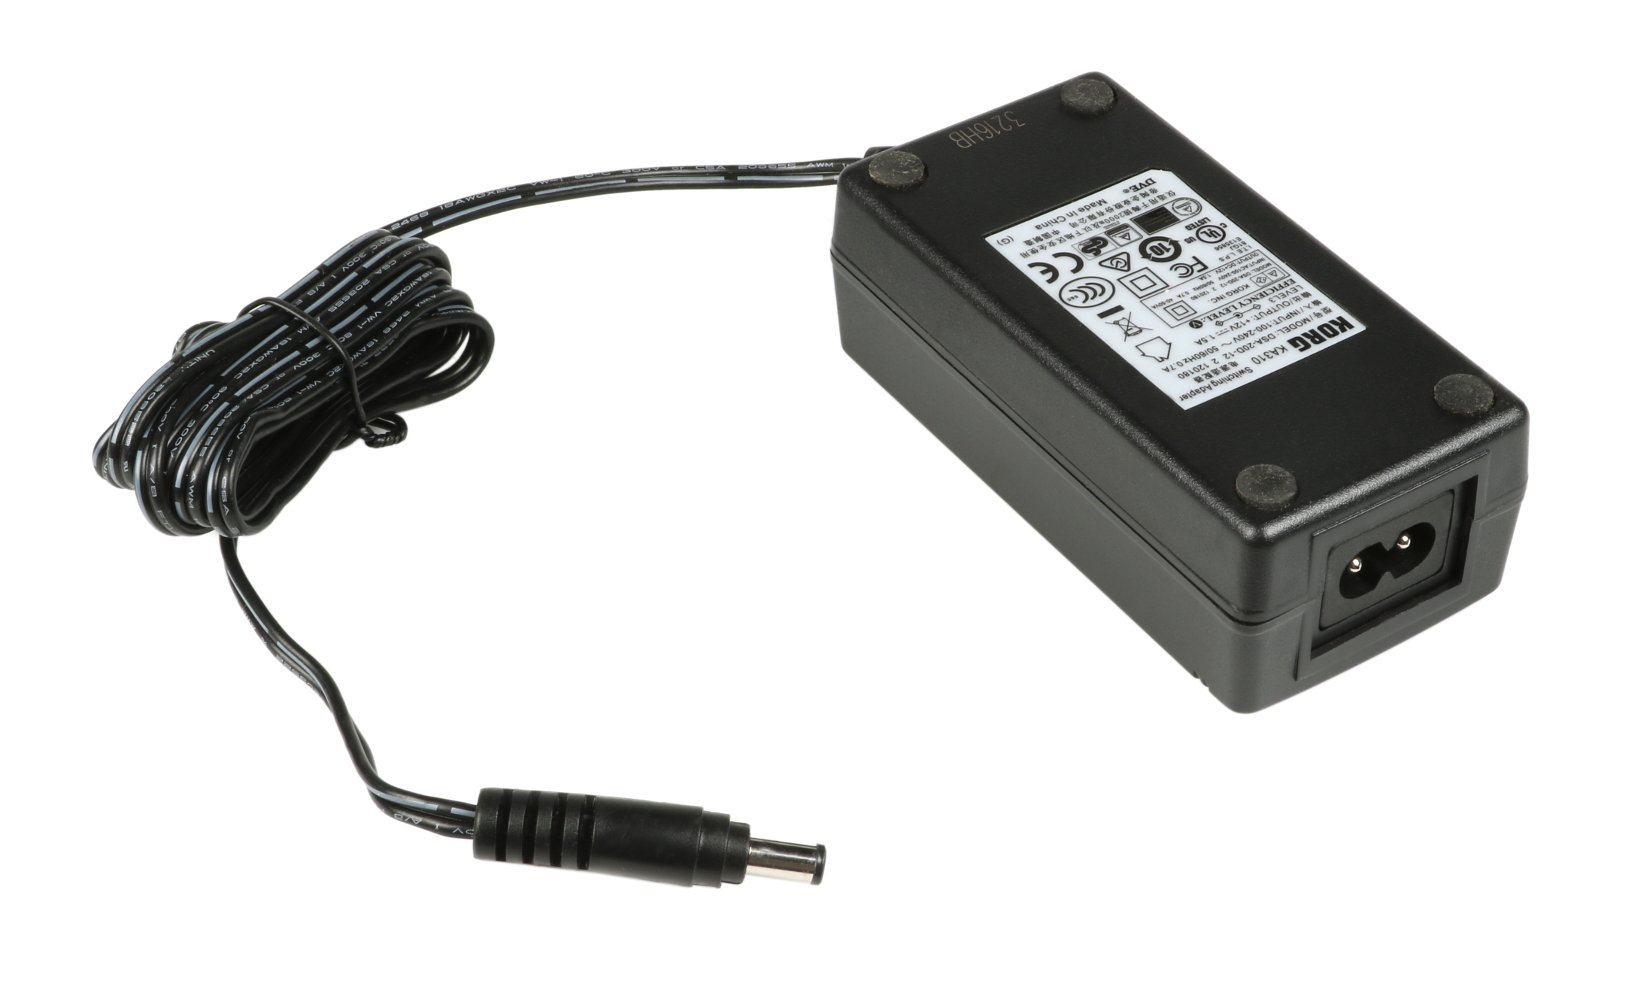 AC Adapter for X50, R3, and MR1000